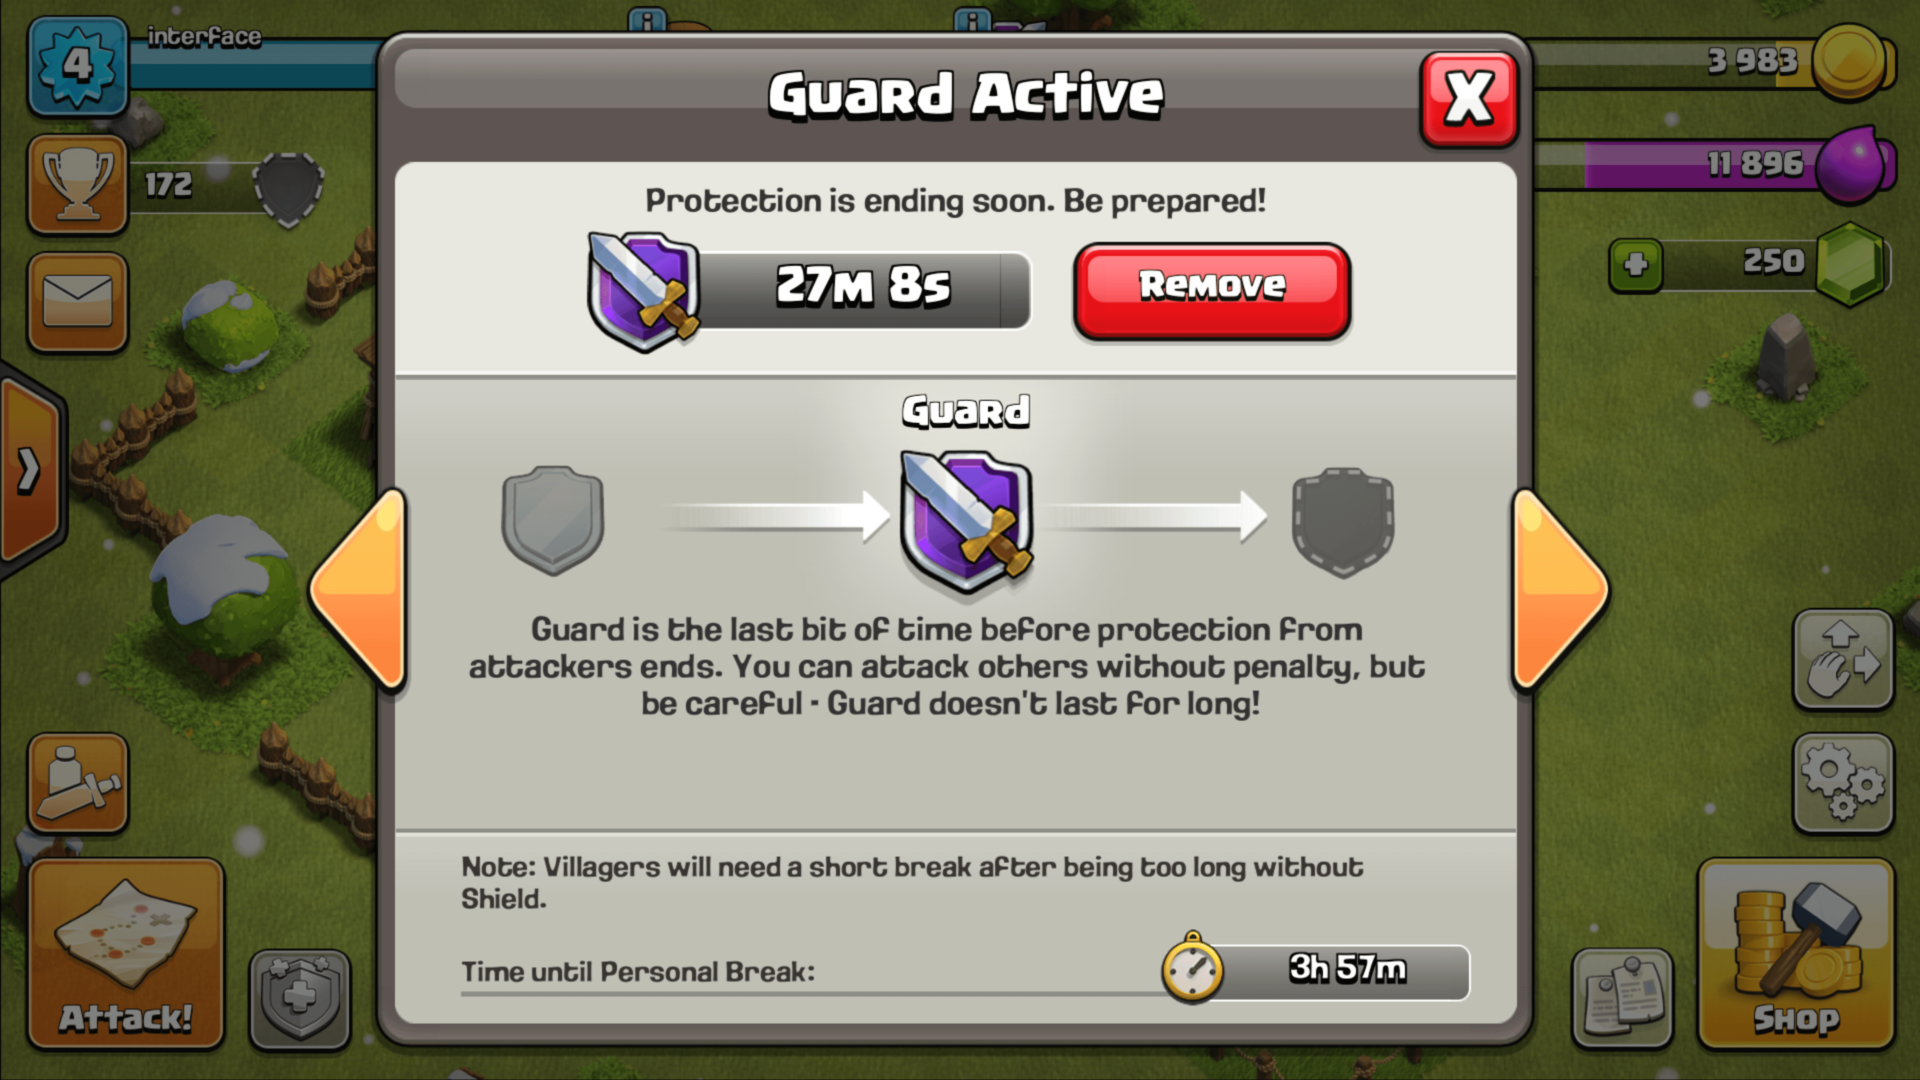 Guard Active screenshot of Clash of Clans video game interface.